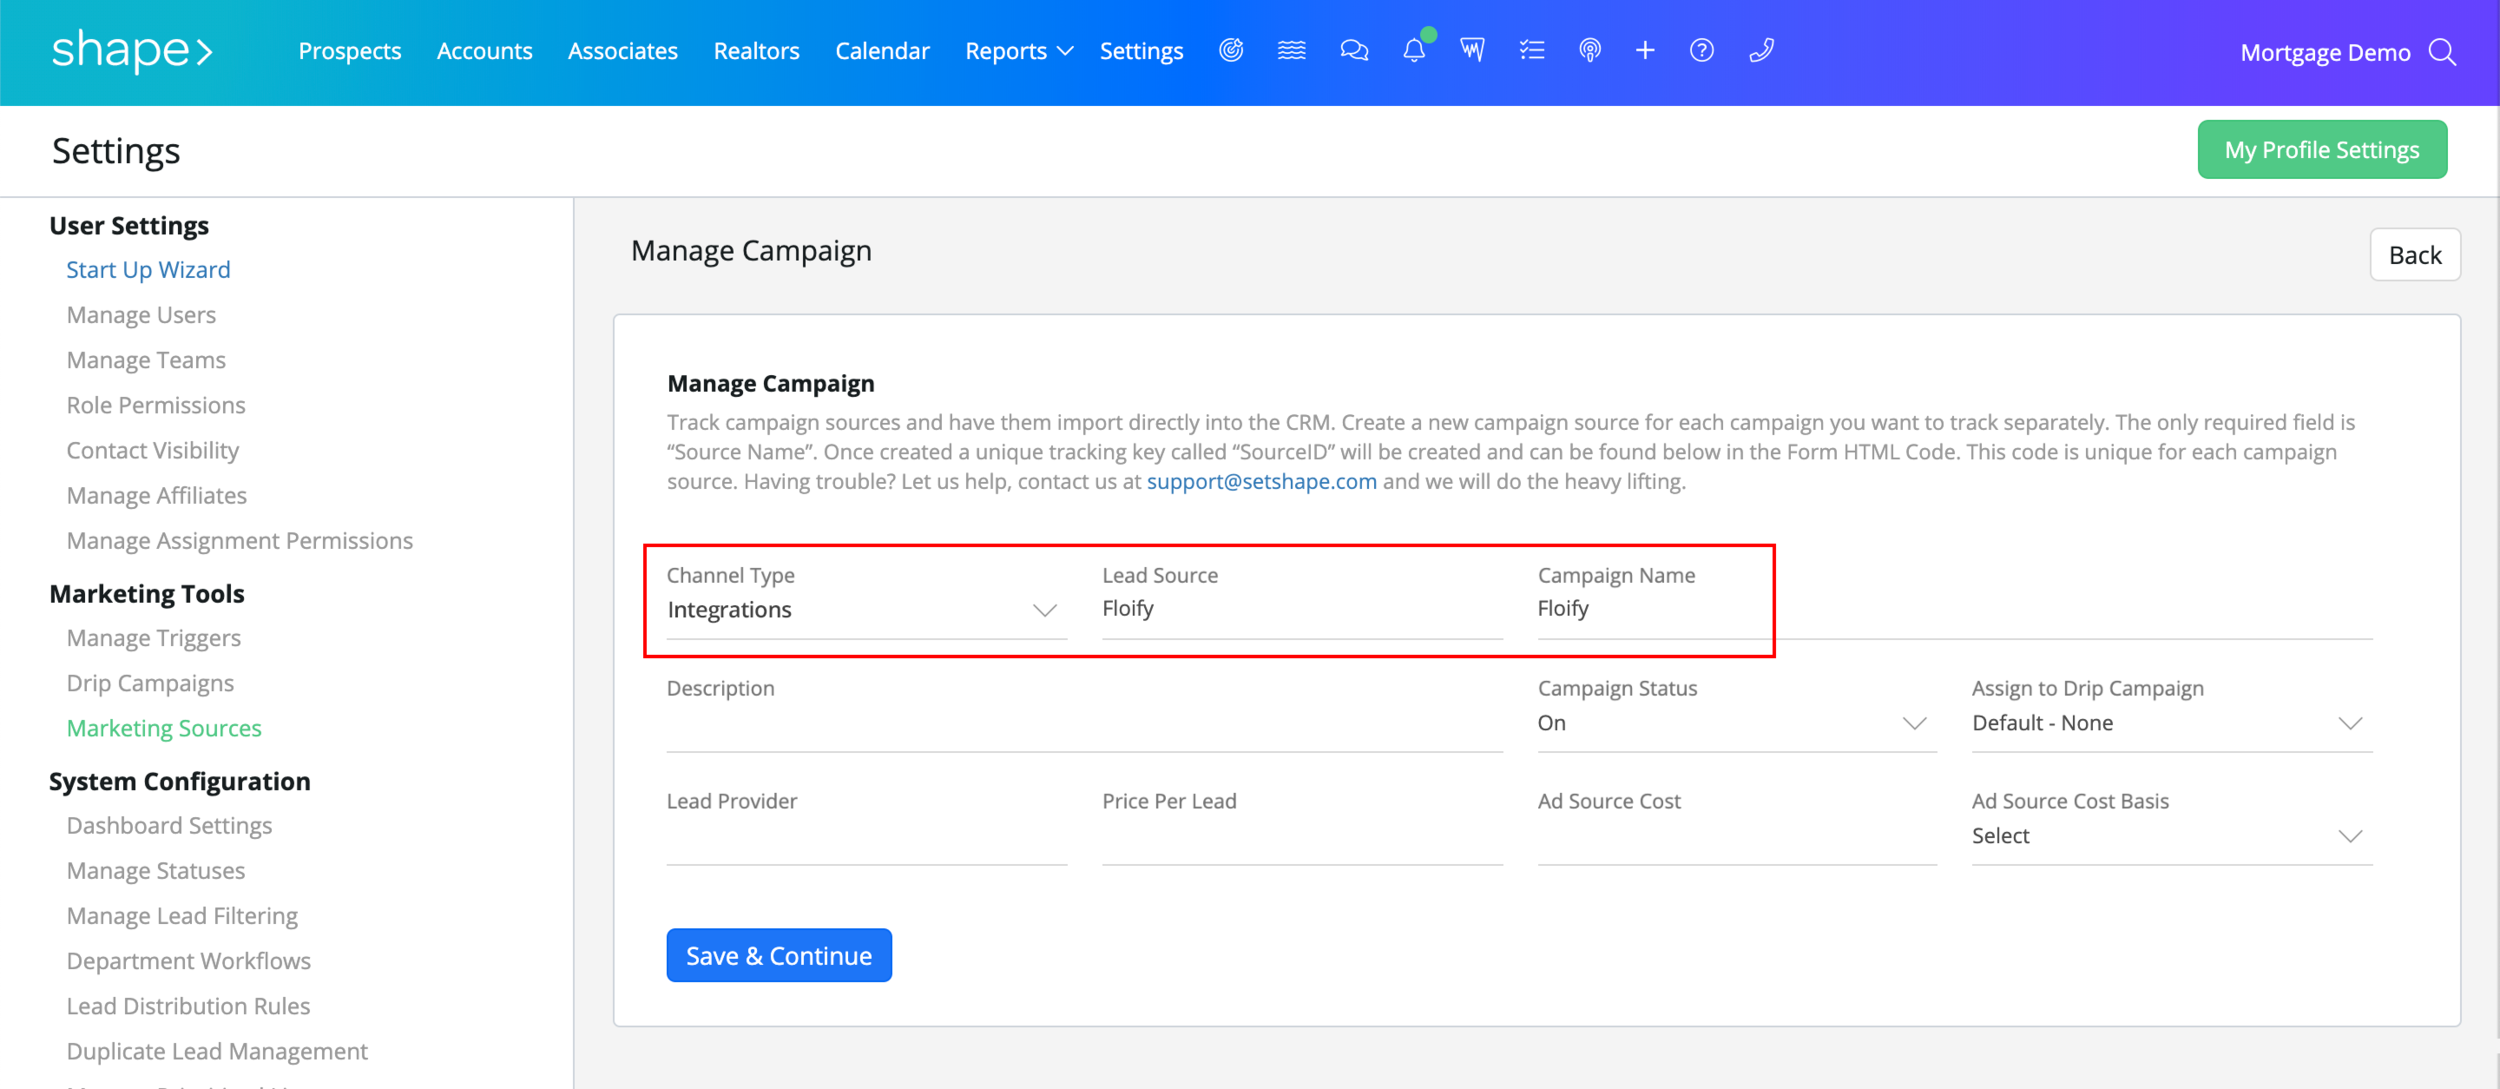 """Step 3:  Enter in the required Channel Type, Lead Source, and Campaign Name fields. The Channel Type, depending on your marketing team should either be """"Business Development"""" or """"Integrations."""" The Lead Source should be """"Floify"""" and the campaign name should also be """"Floify."""" Description and the remaining fields are optional. Next press """"Save & Continue."""""""